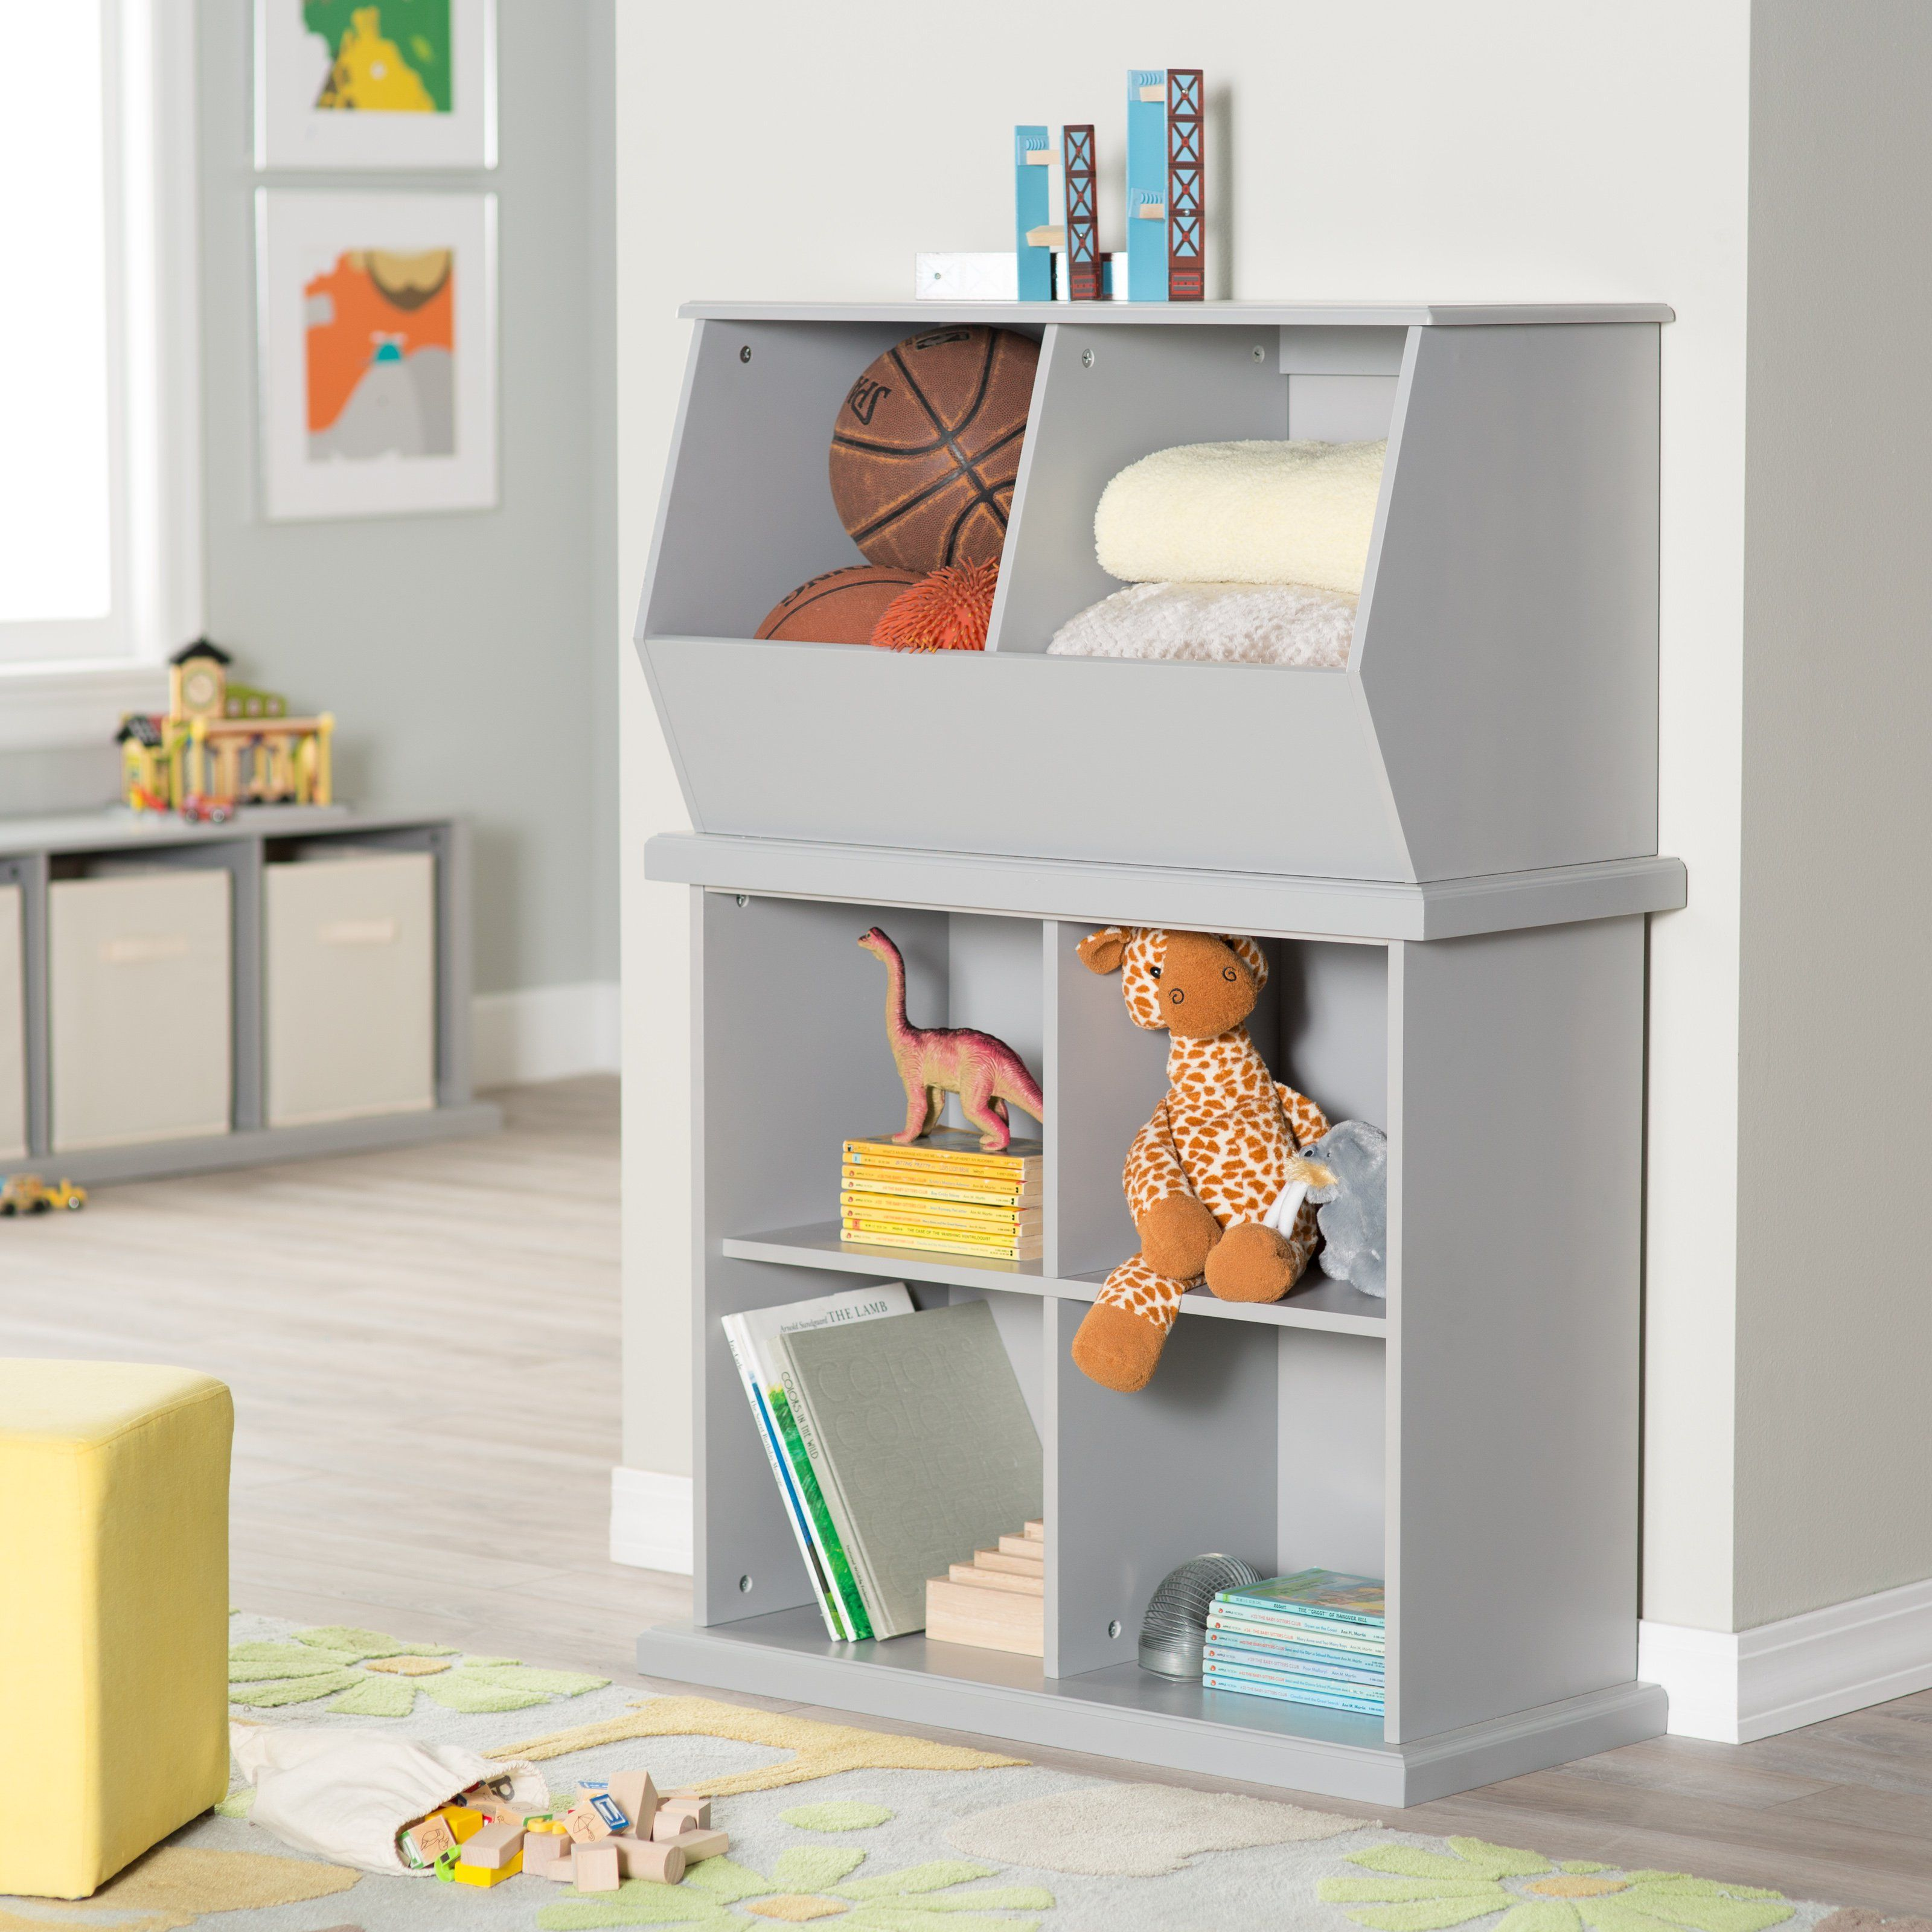 Classic Playtime Stackable Toy Storage   Gray   In Any Configuration, The  Classic Playtime Stackable